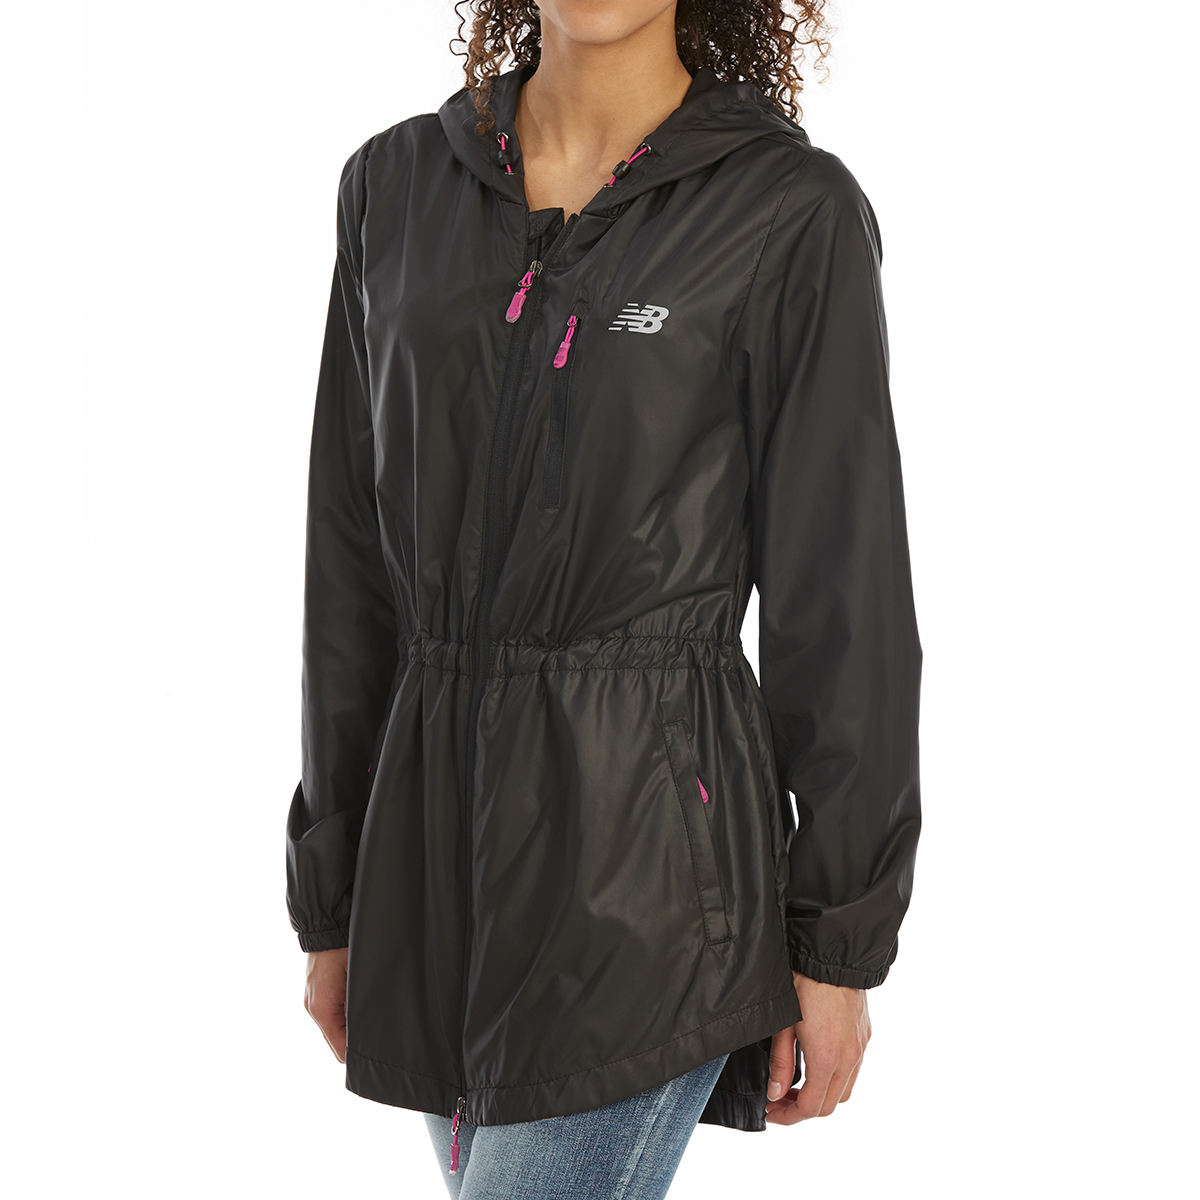 New Balance Women's Poly Cire Anorak Jacket - Black, M